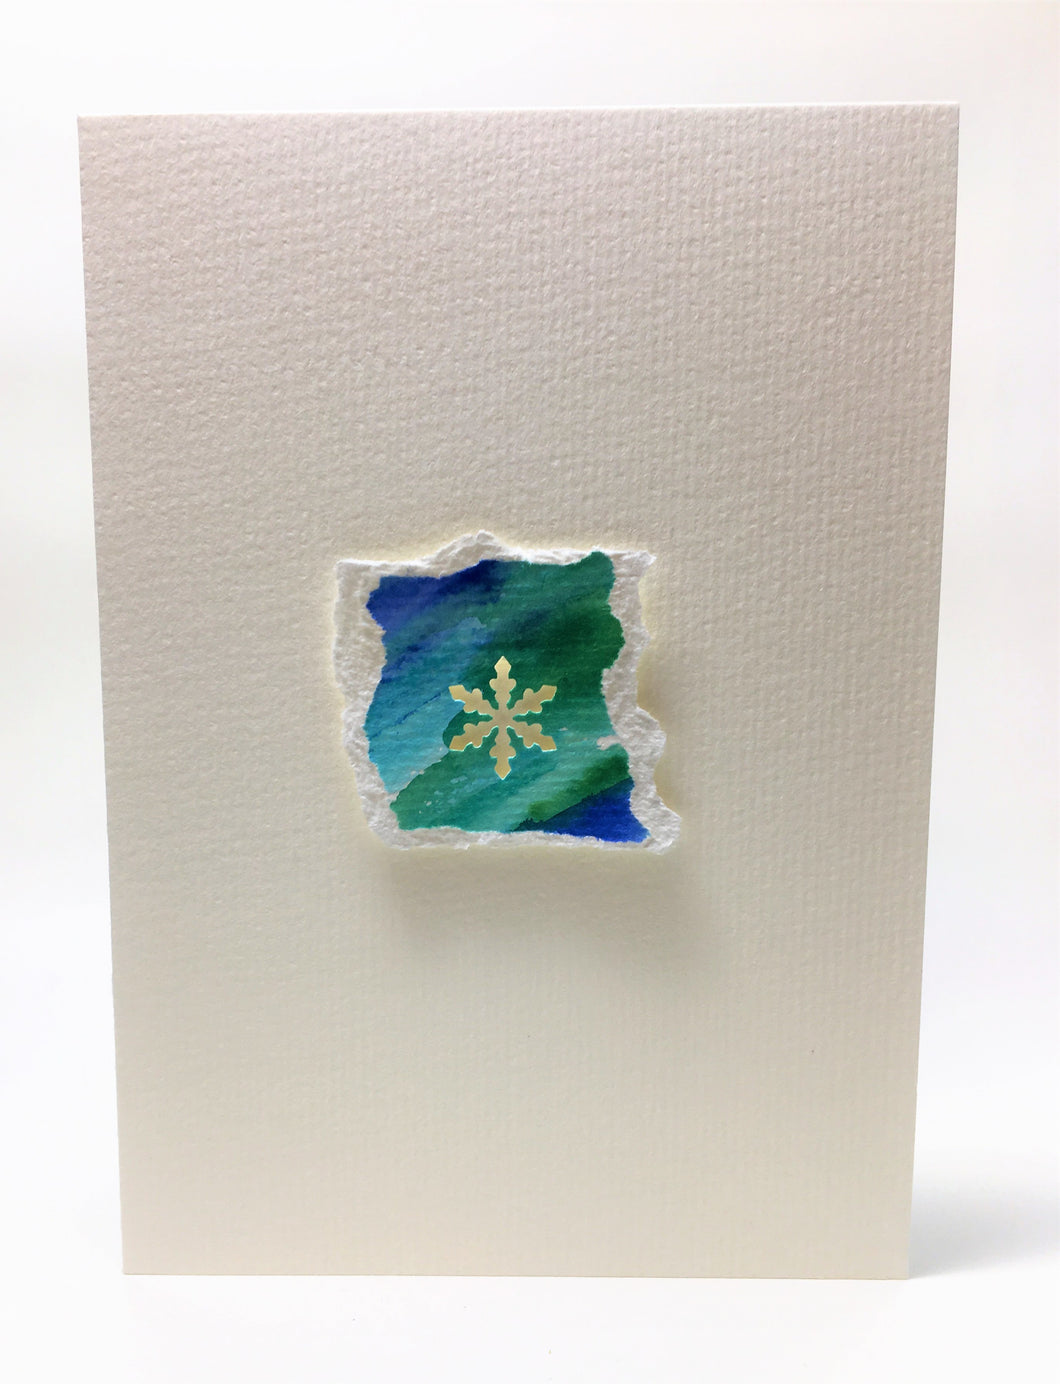 Original Hand Painted Christmas Card - Snowflake Collection - Blue/Green 1 - eDgE dEsiGn London